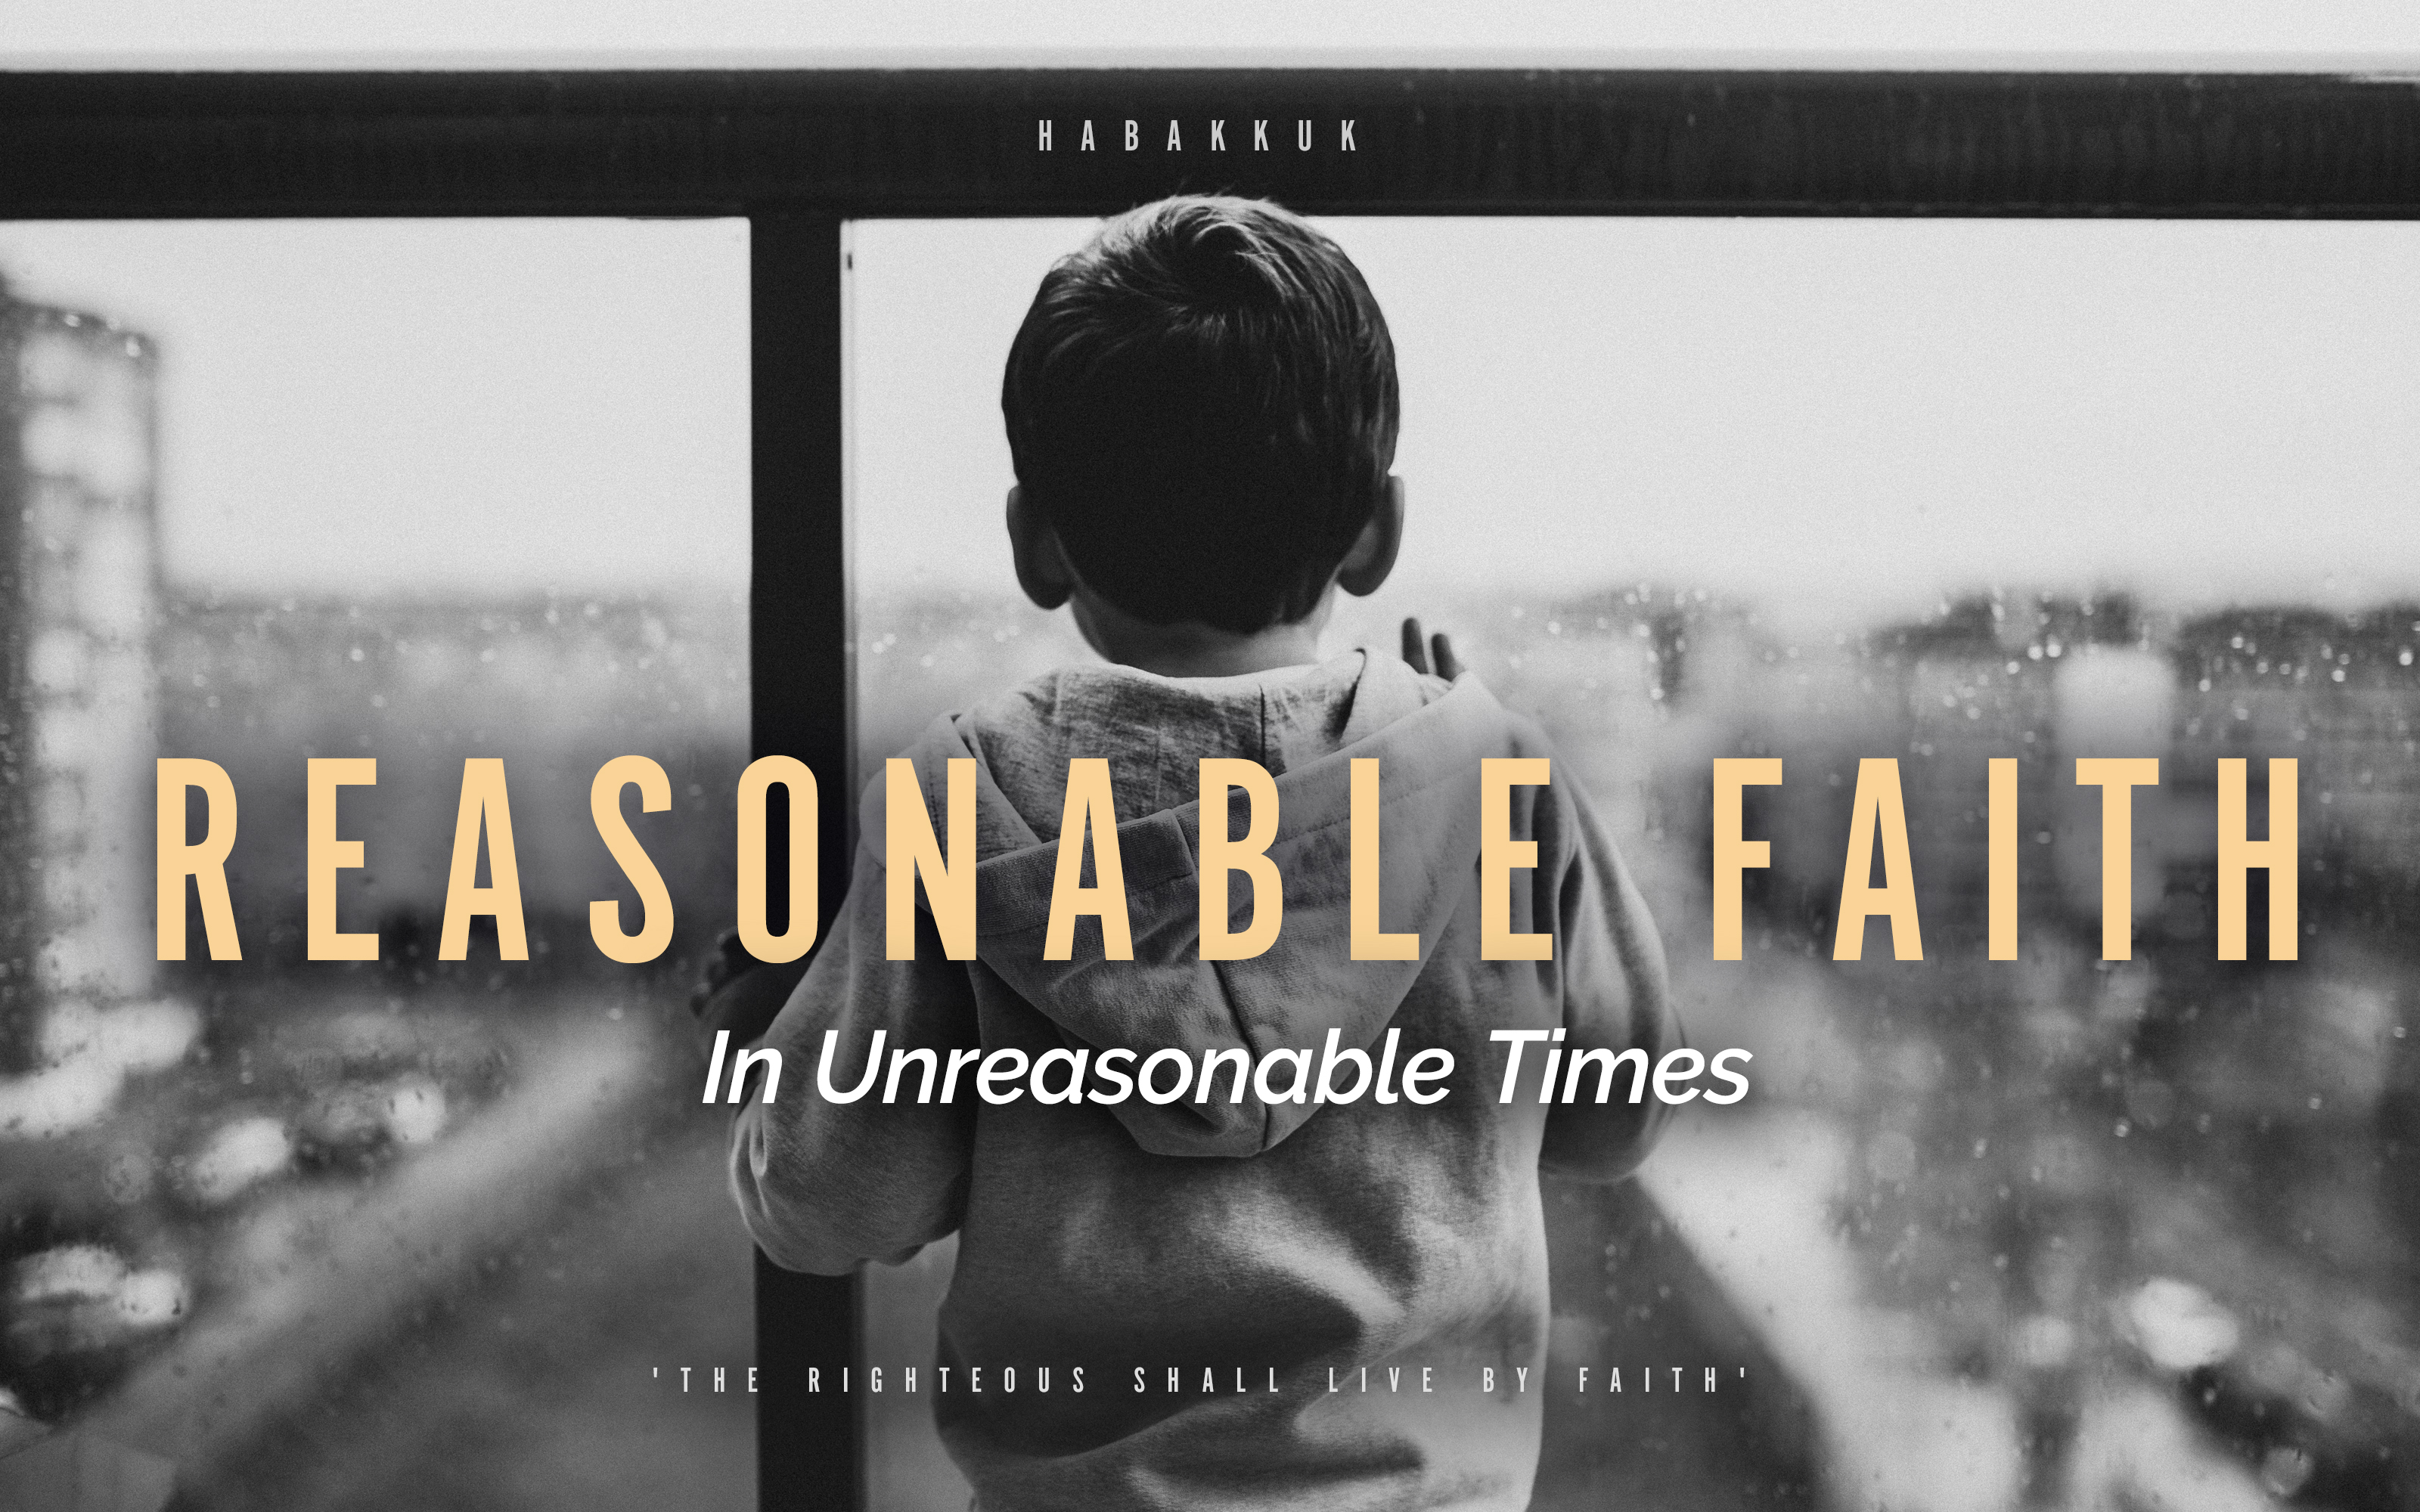 Reasonable Faith in Unreasonable Times - HABAKKUK Waiting On God